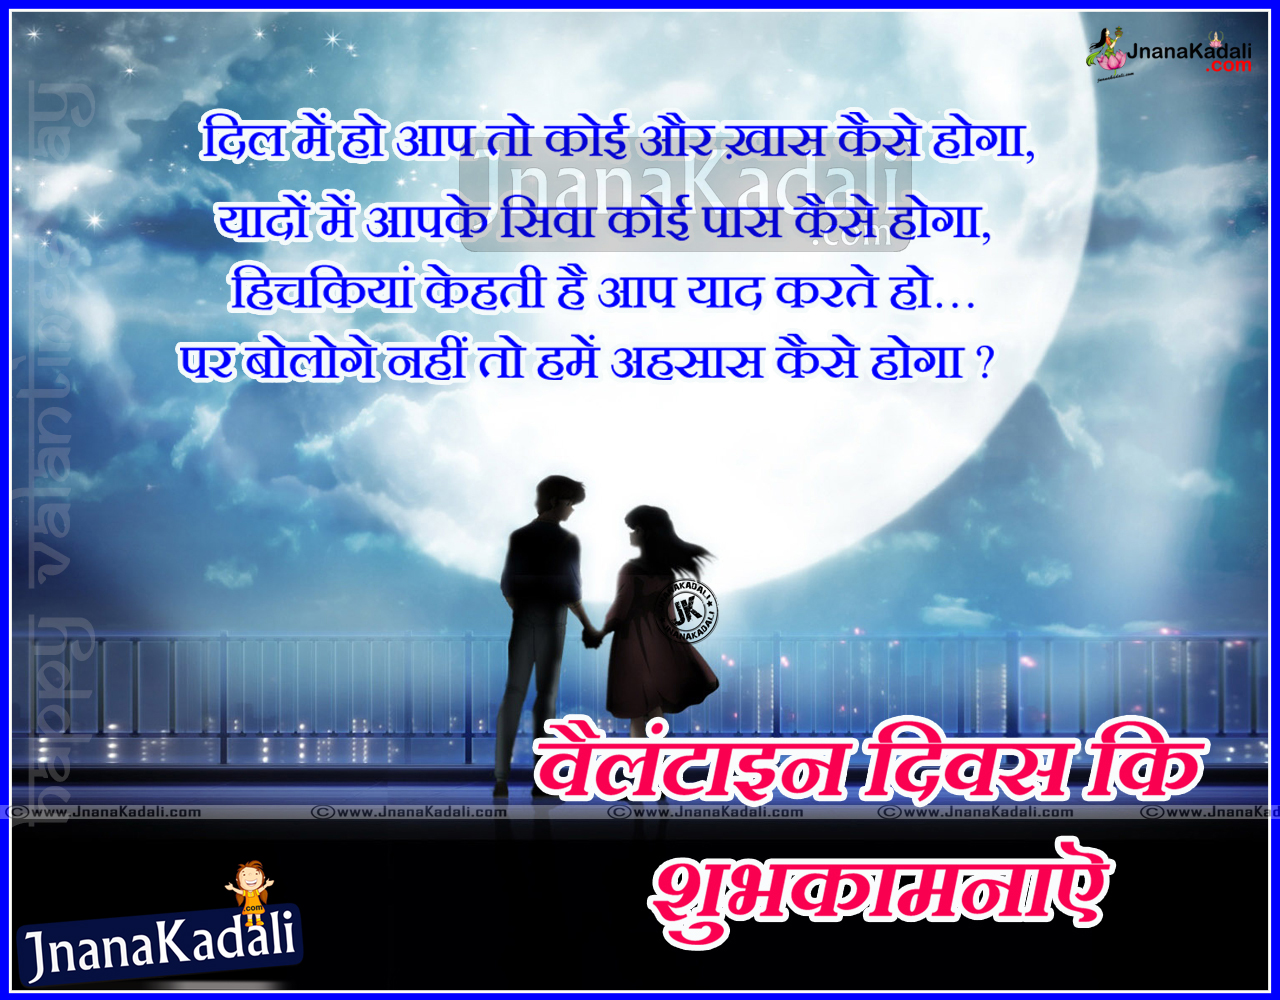 Romantic Love Wallpapers With Messages : Hindi Romantic Love Wallpapers With Quotes